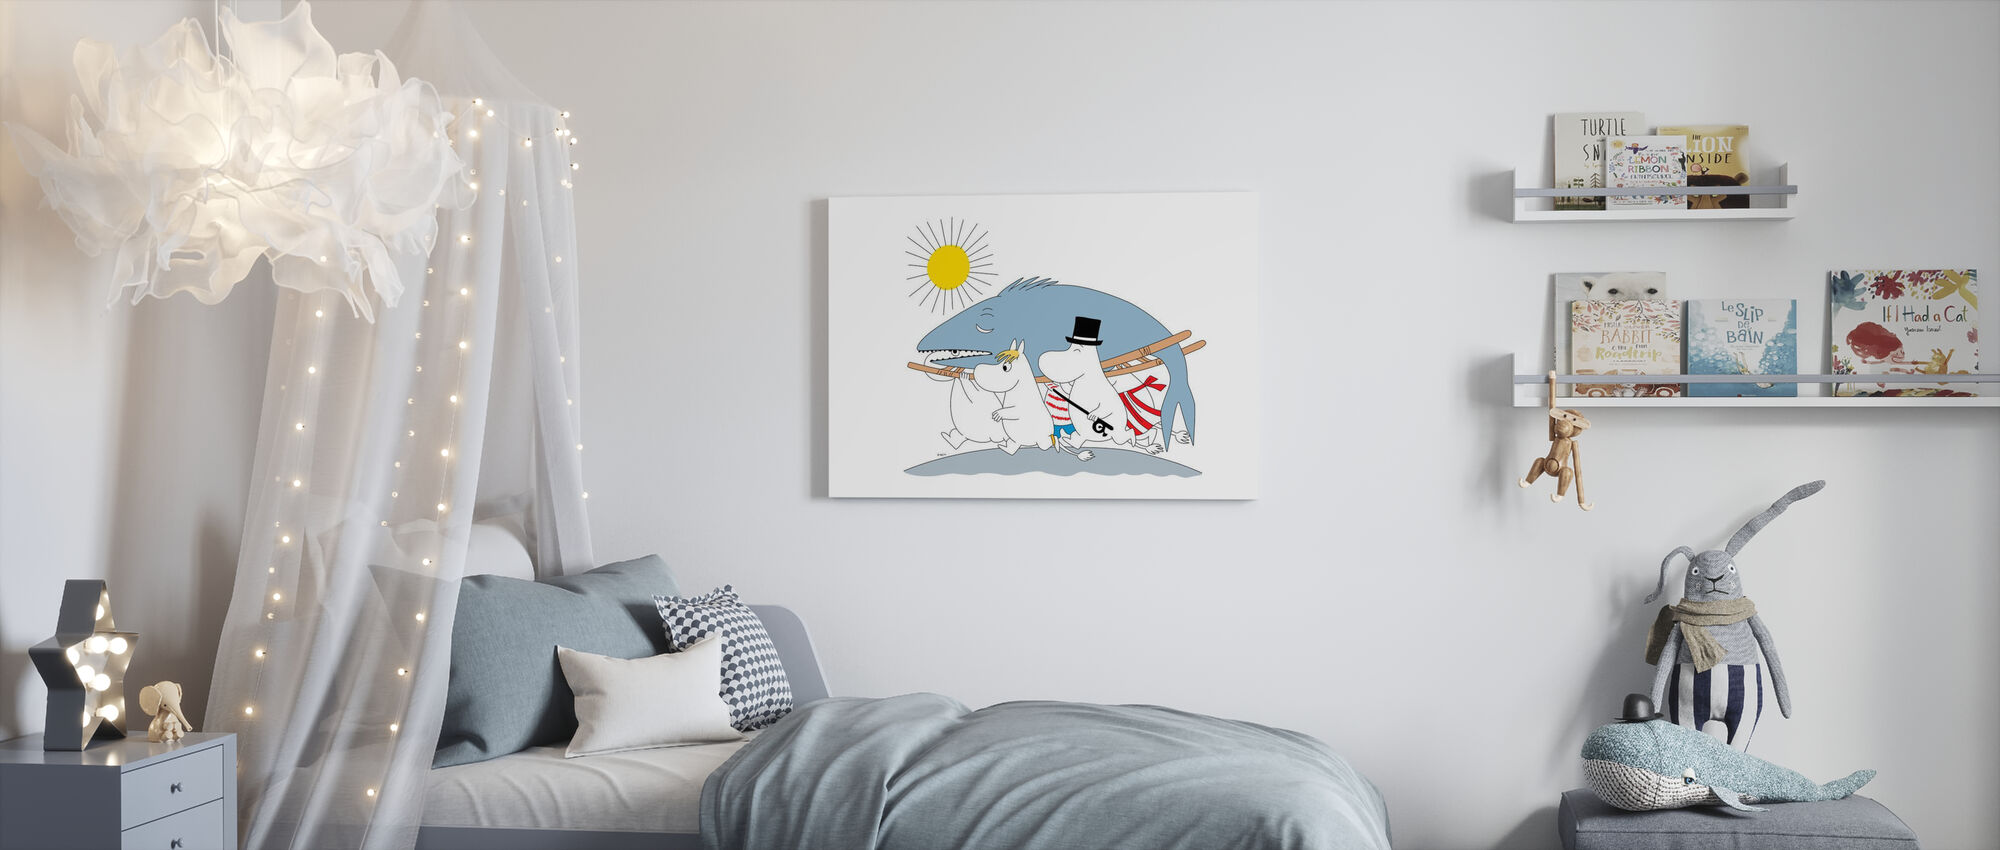 Mumin - Big Fish - Leinwandbild - Kinderzimmer